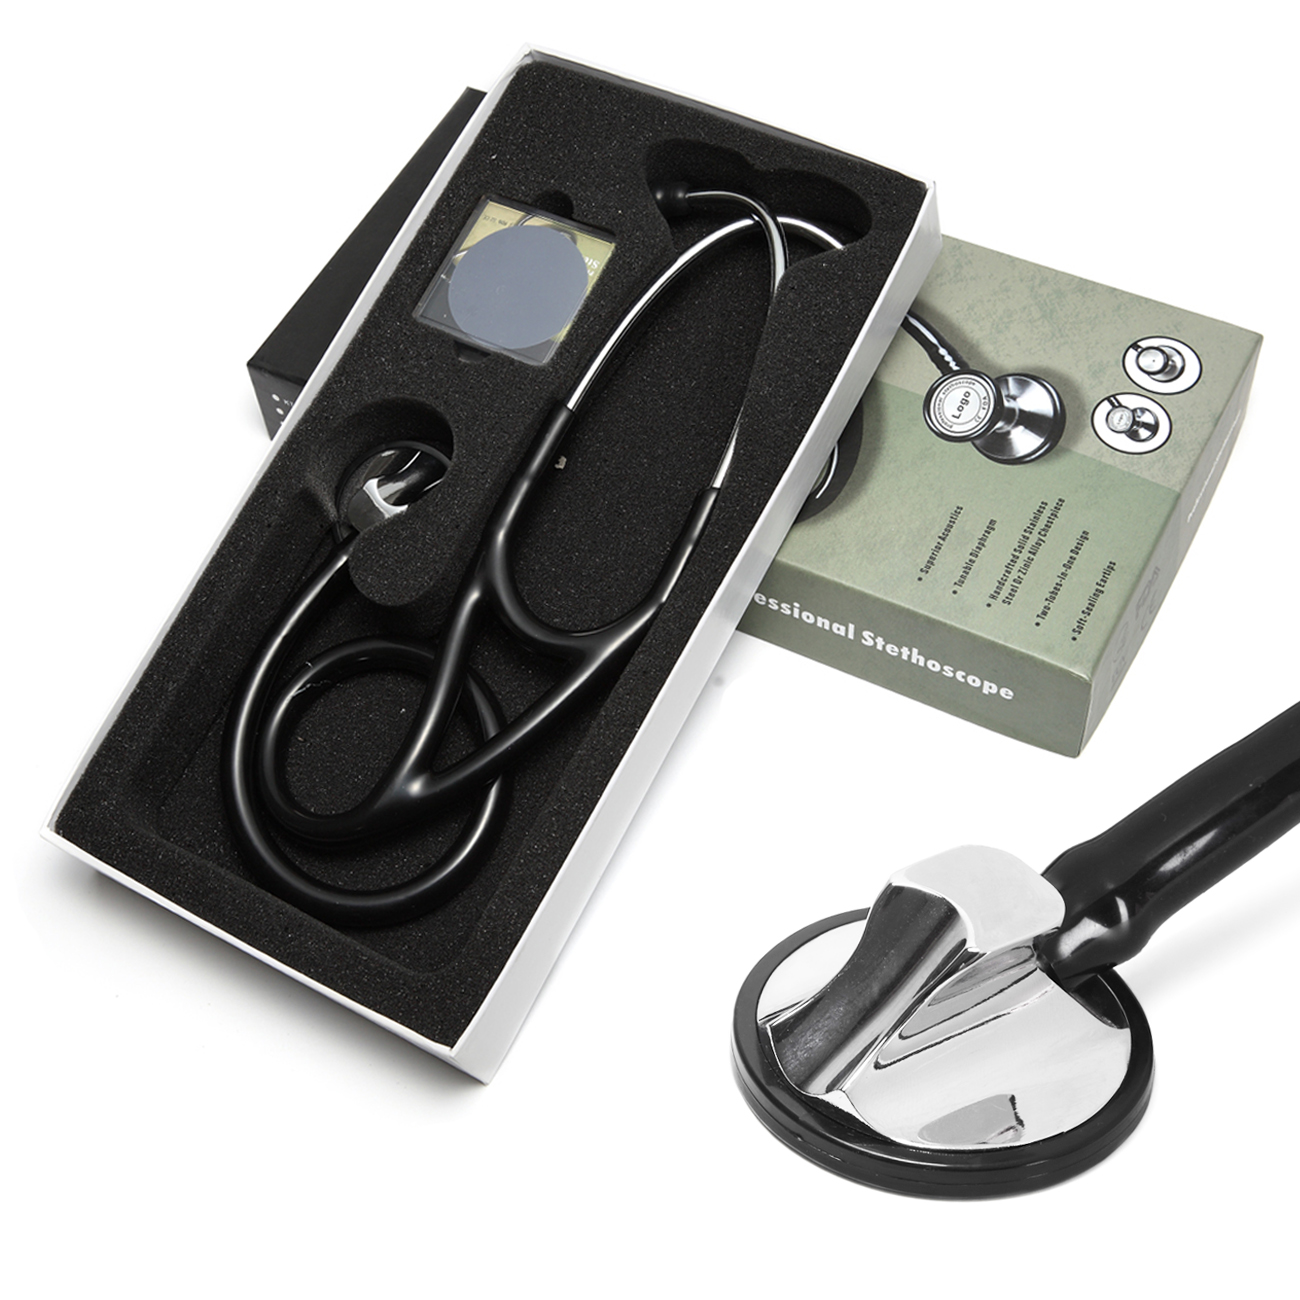 Medical-Equipment-Device Stethoscope Doctor Lung Heart Professional Student Single-Head